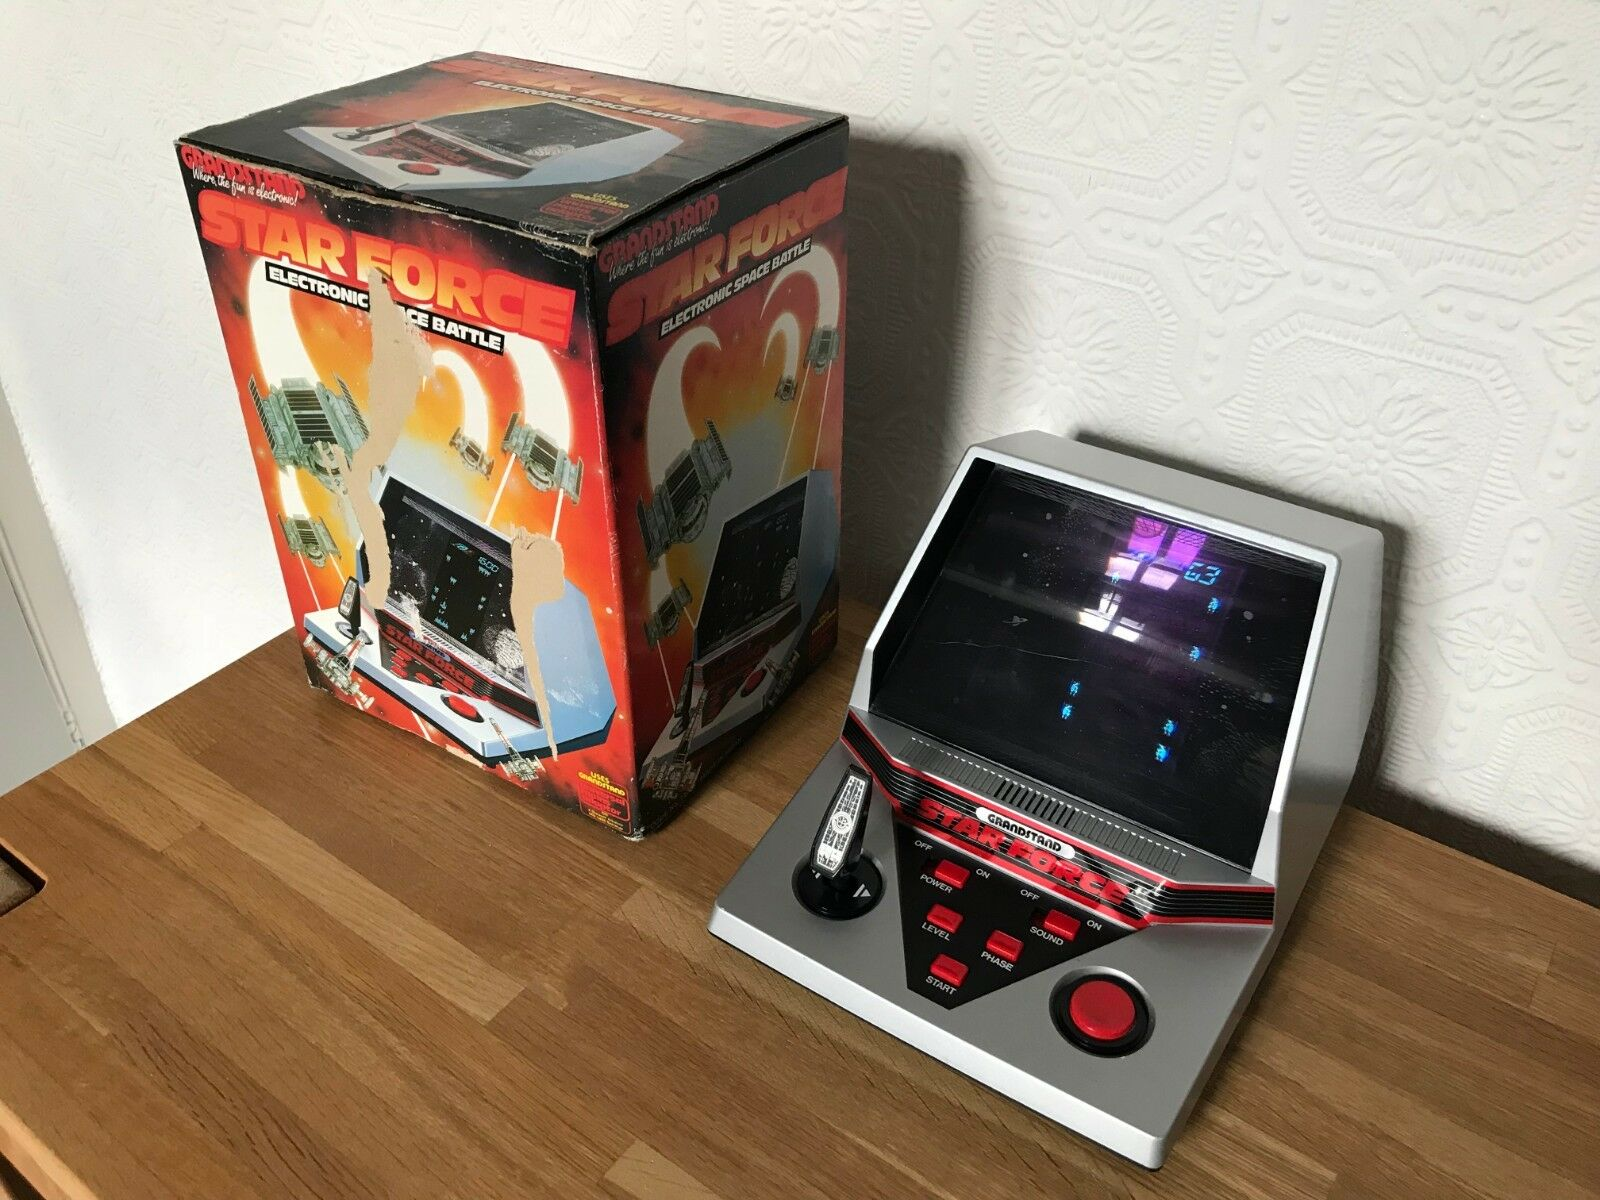 Super Boxed Grandstand Star Force Vintage 1984 Tabletop Electronic Game in VGC.